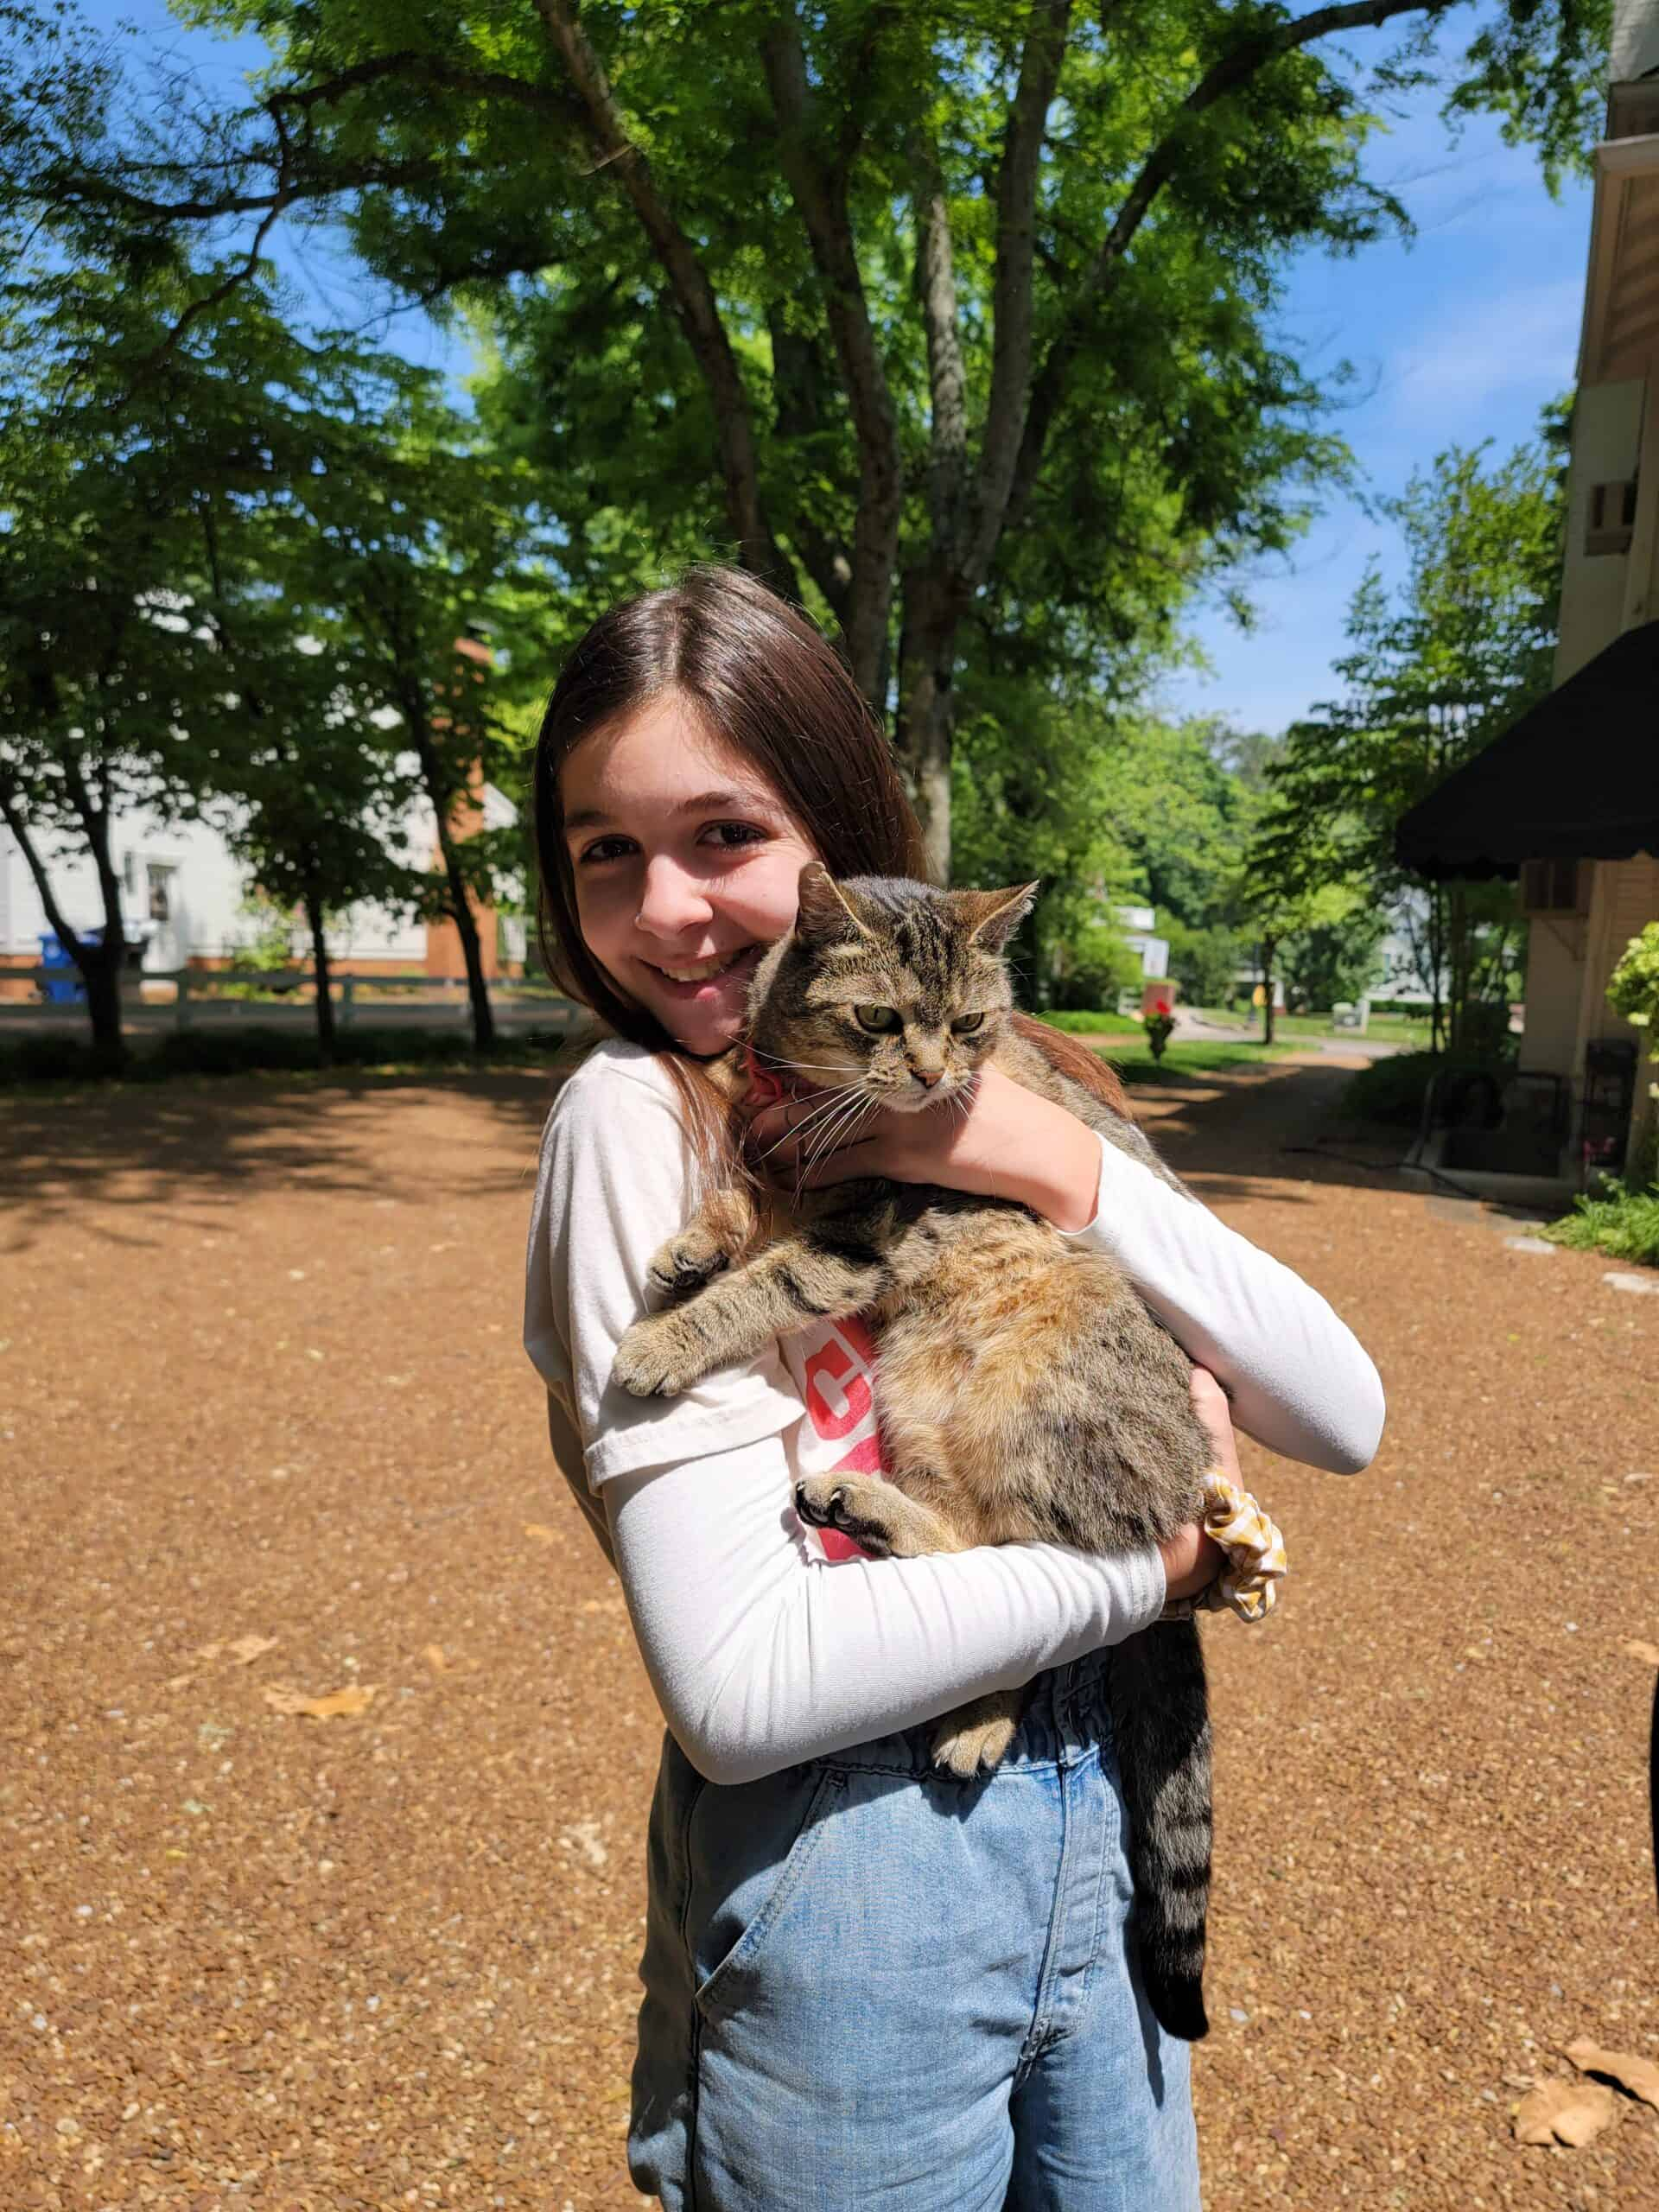 Noelle holding a cat